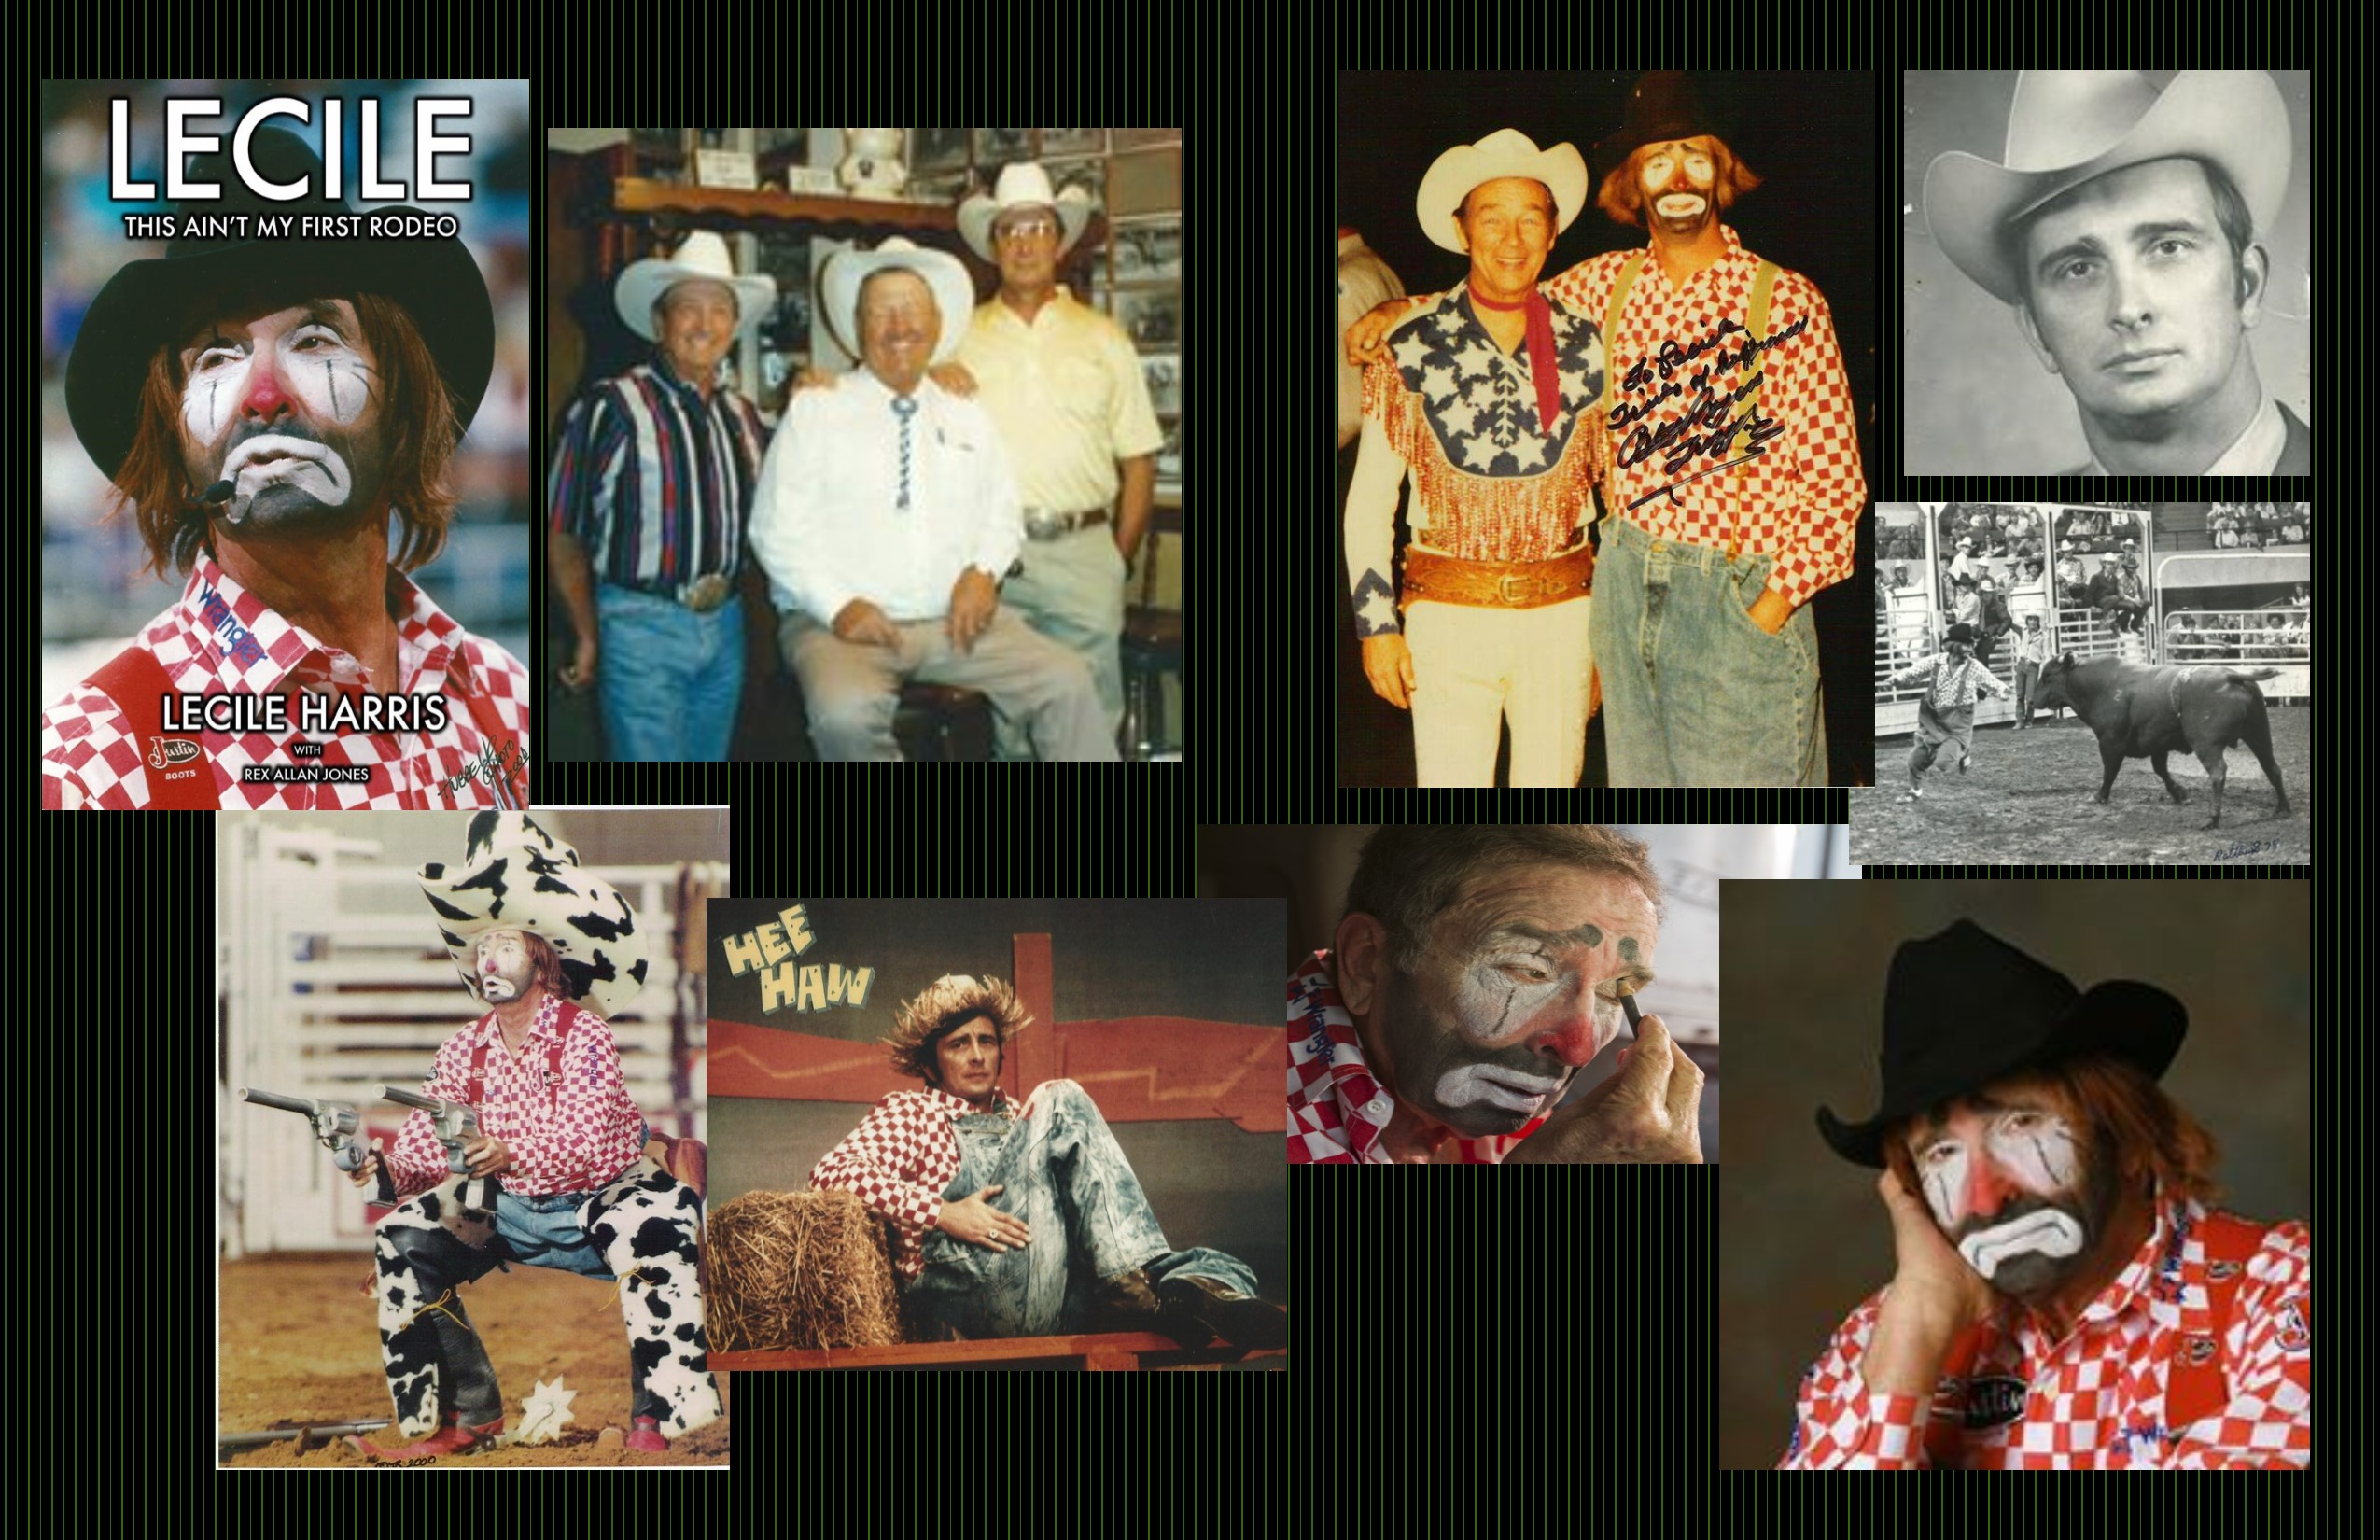 Pro Rodeo Hall of Fame Clown-Lecile Harris